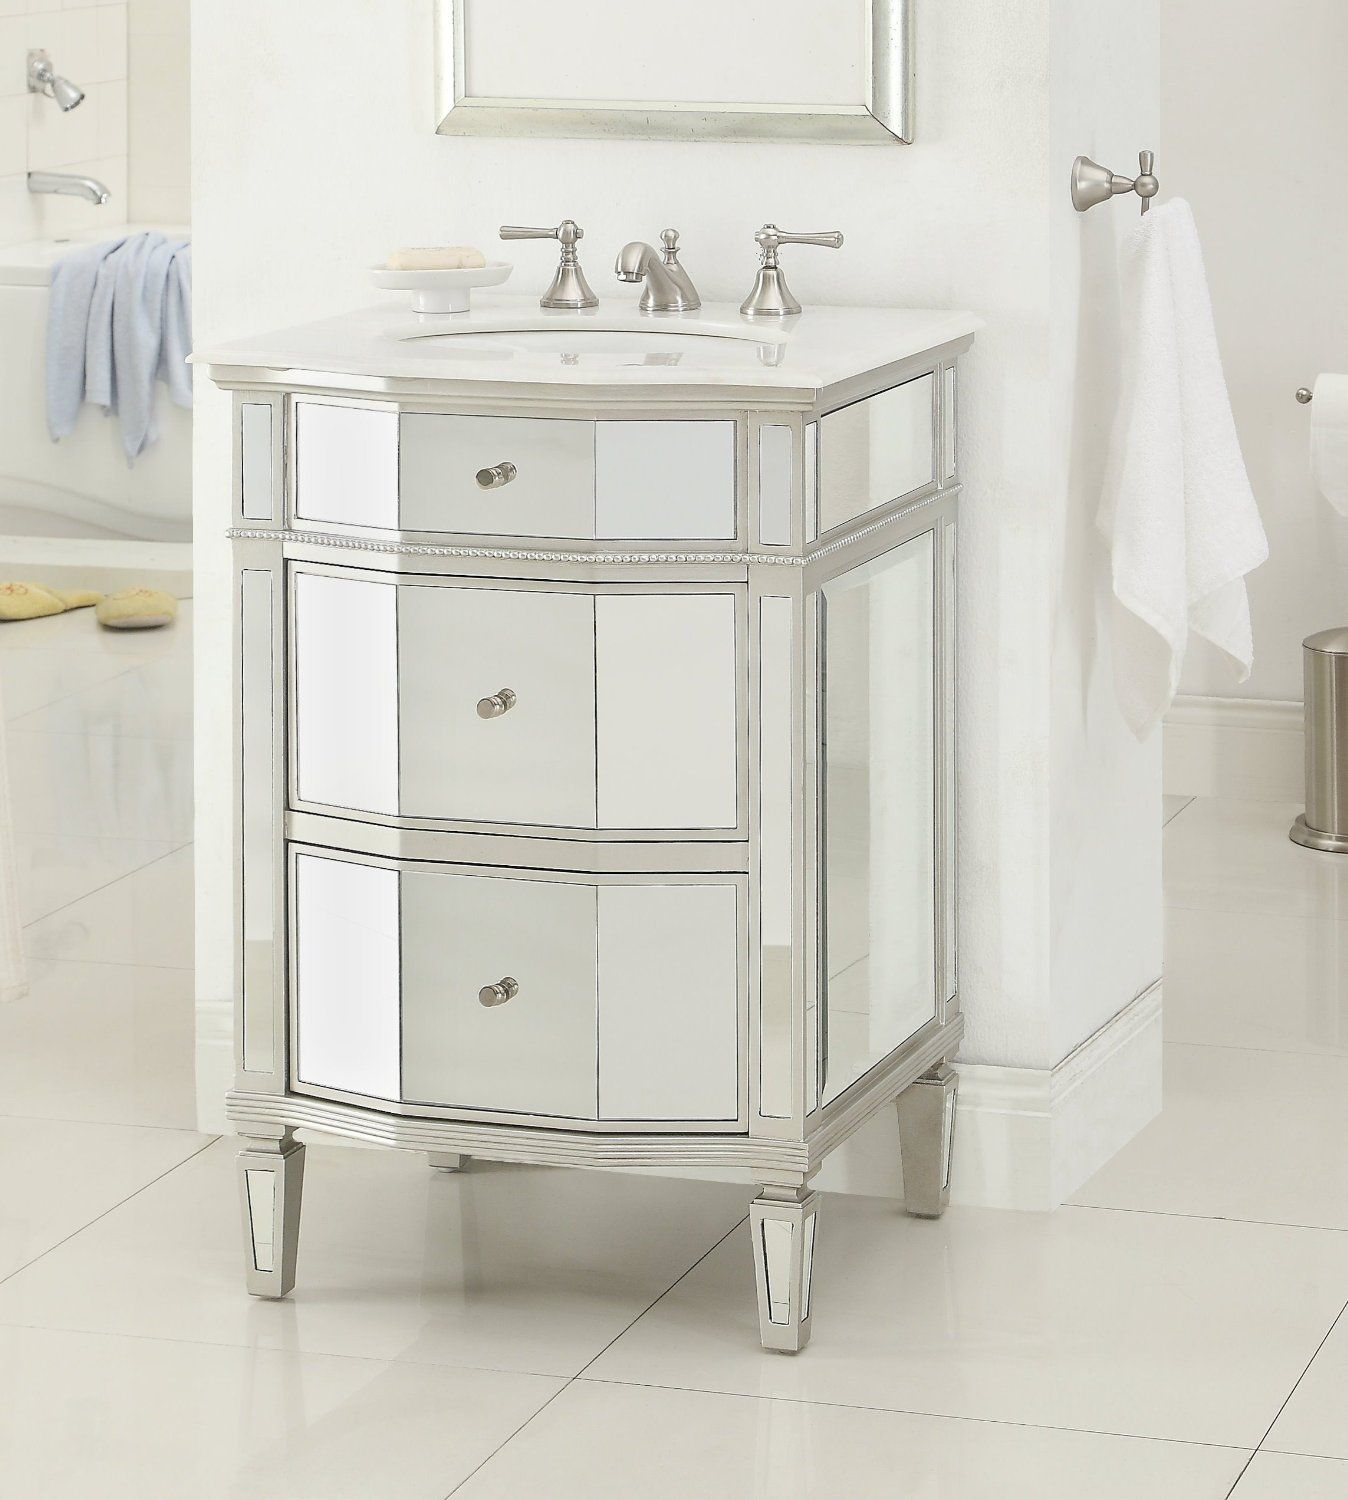 Adelina Inch Mirrored Bathroom Vanity Imperial White Marble - 24 bathroom vanity with drawers for bathroom decor ideas